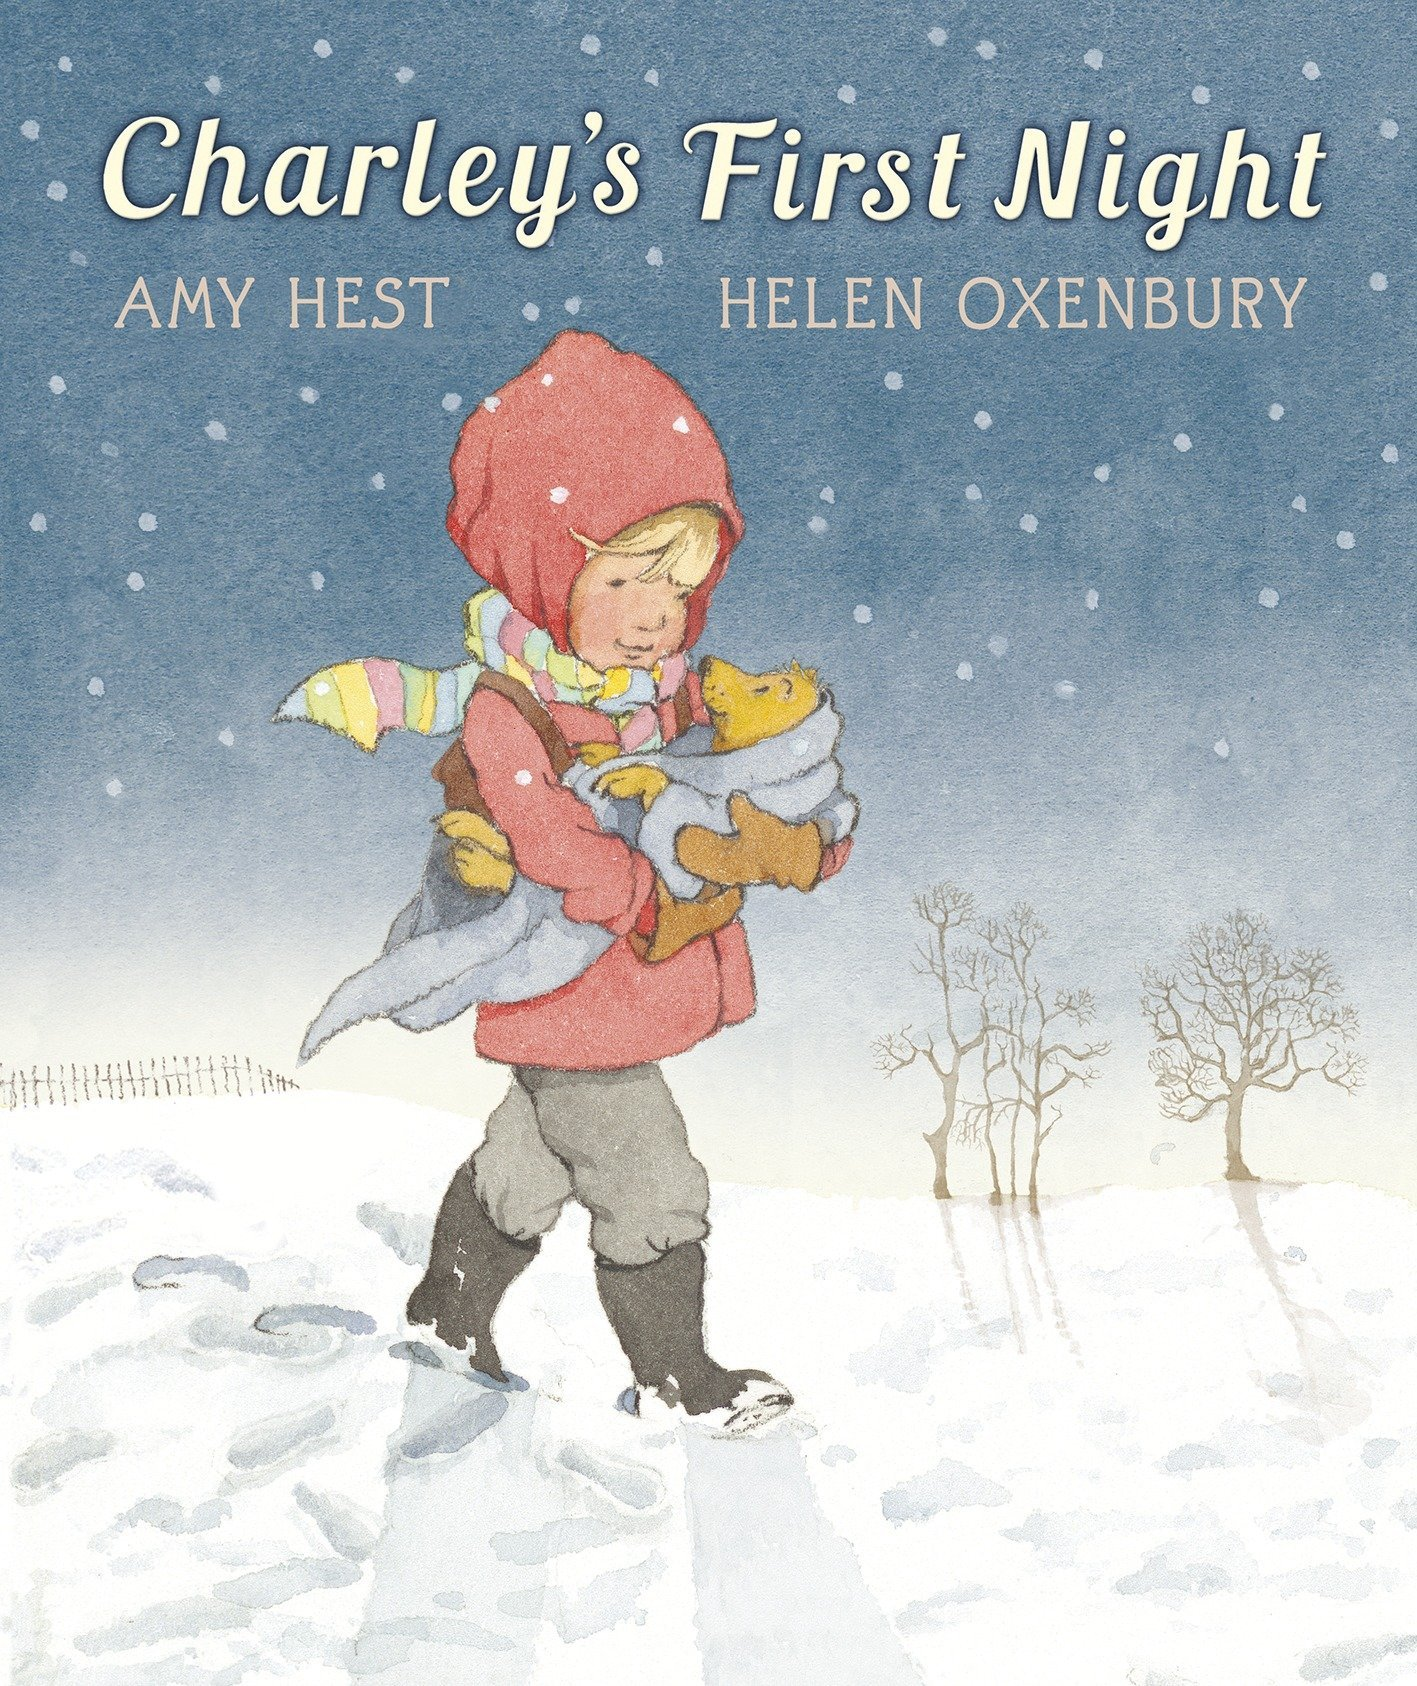 Charley\'s First Night: Amy Hest, Helen Oxenbury: 9780763640552 ...